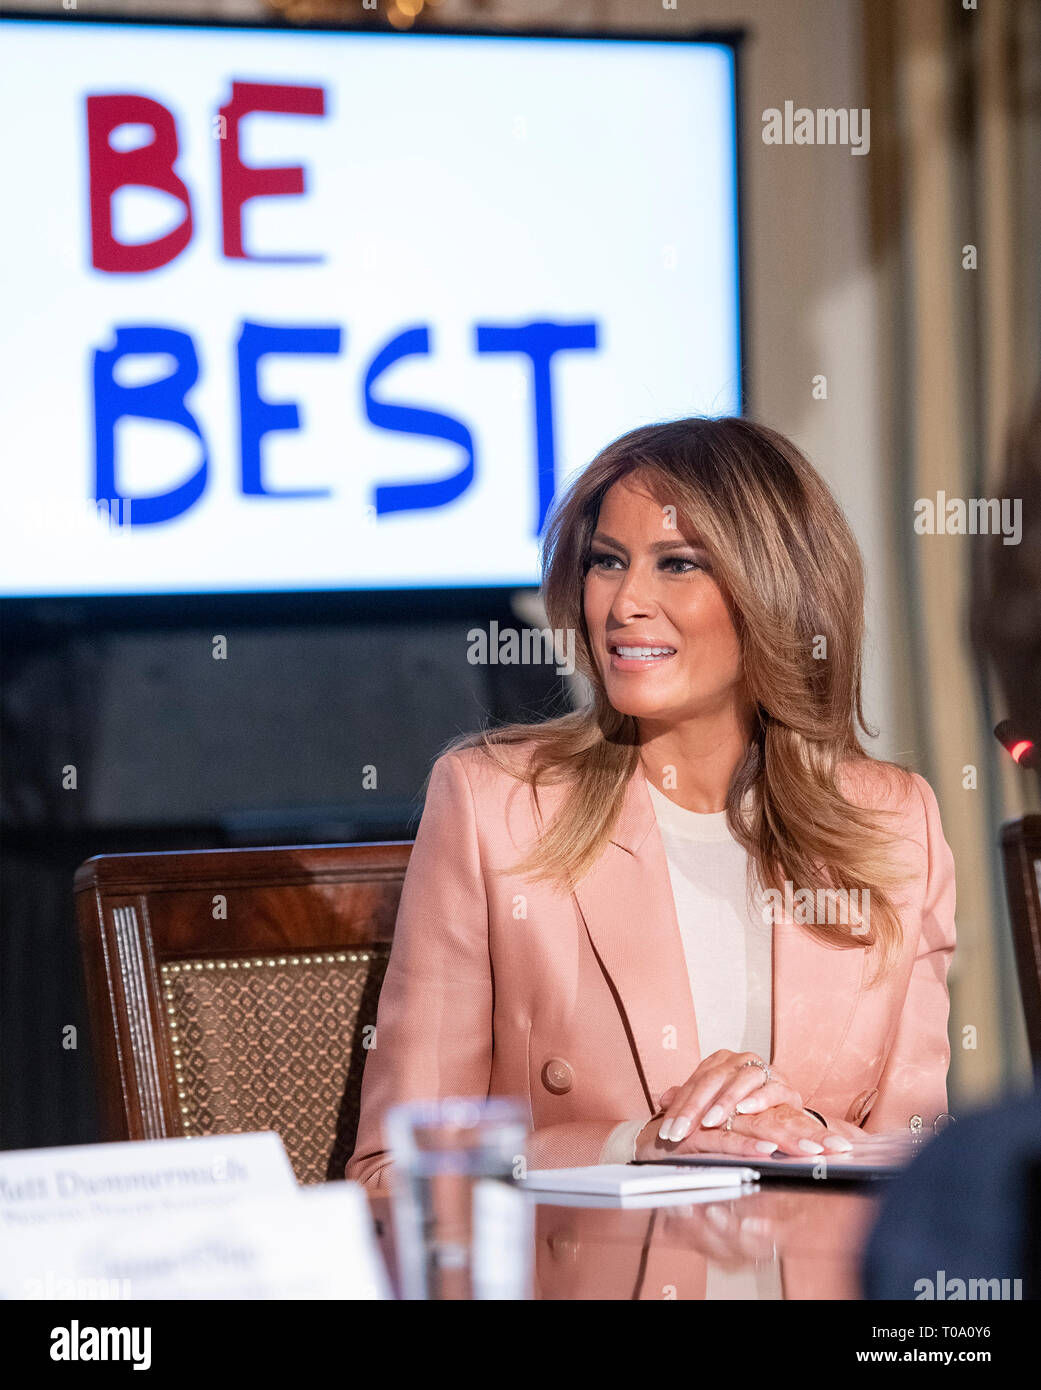 """First lady Melania Trump hosts a meeting of the Interagency Working Group on Youth Programs in the State Dining Room of the White House in Washington, DC on Monday, March 18, 2019. The group was originally established under former United States President George W. Bush and is part of an effort to align the First Lady's """"Be Best"""" initiative with the working group. Credit: Ron Sachs/CNP /MediaPunch Stock Photo"""